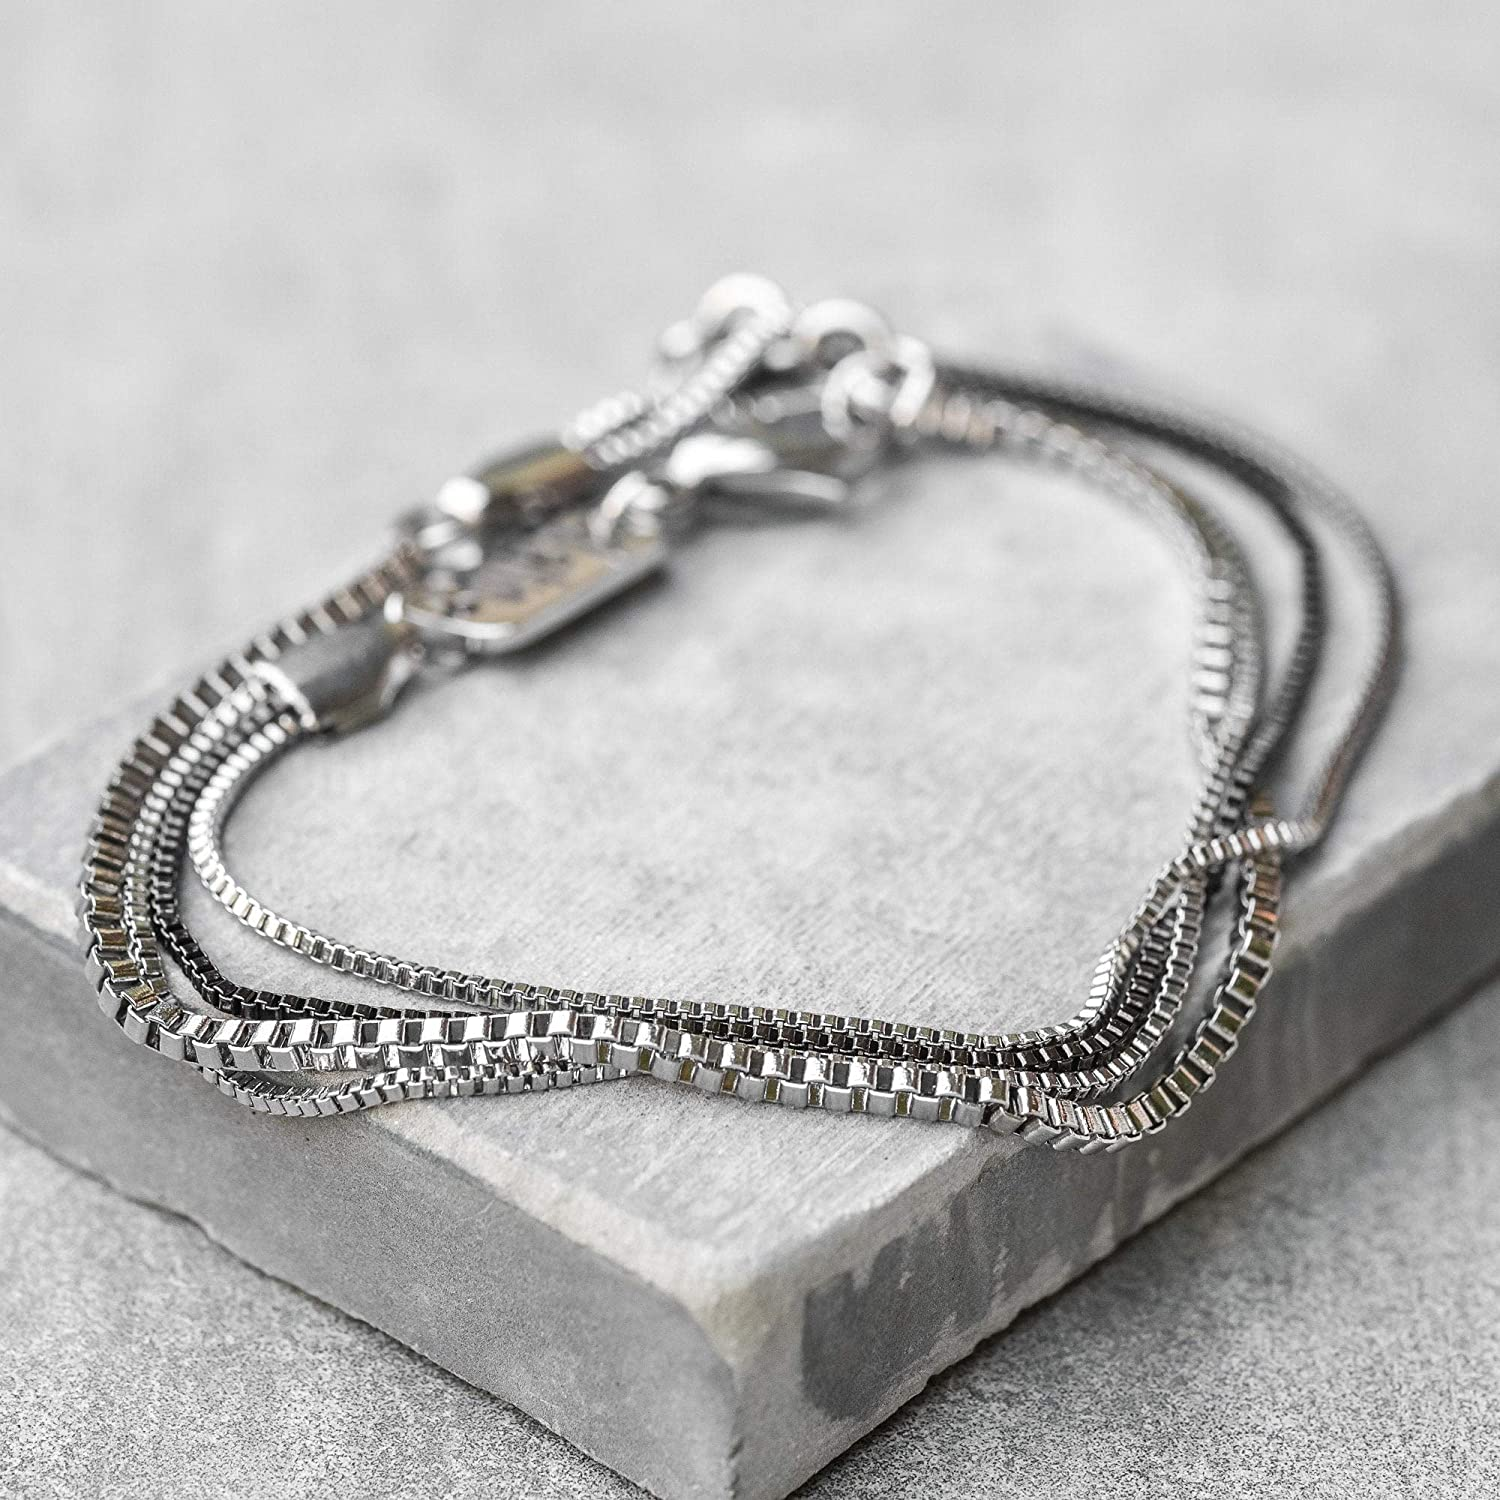 Jewelry For Men FITS 7-8 WRIST SIZE Silver Bracelet For Men Handmade Cuff Chain Bracelet For Men Made Of Stainless Steel By Galis Jewelry Cuff bracelet For men